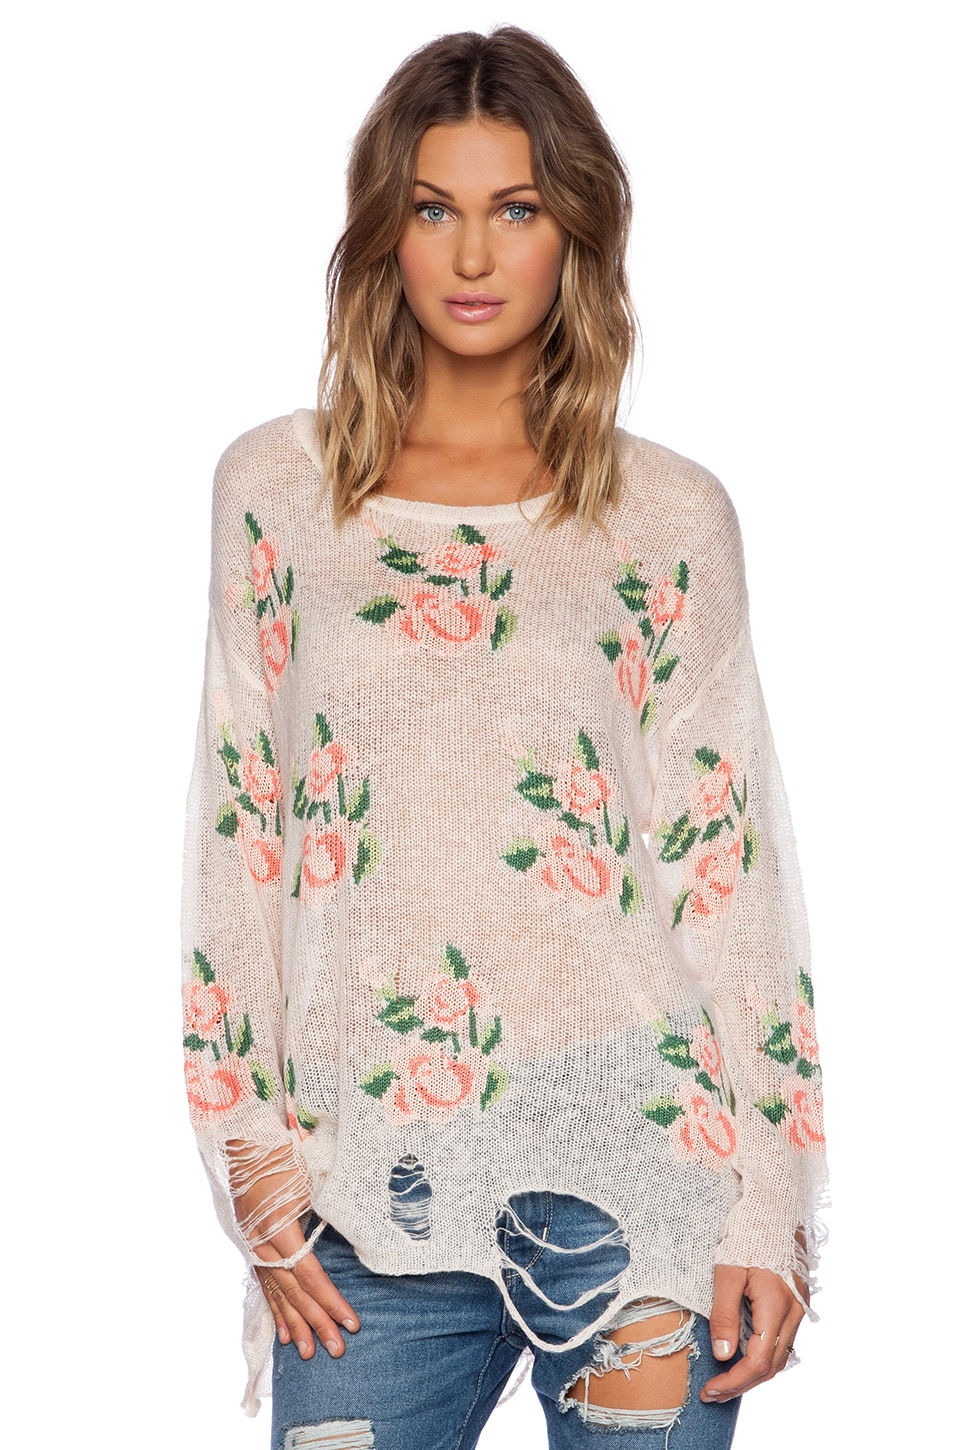 Wildfox Couture Prairie Rose Sweater in Georgia Peach